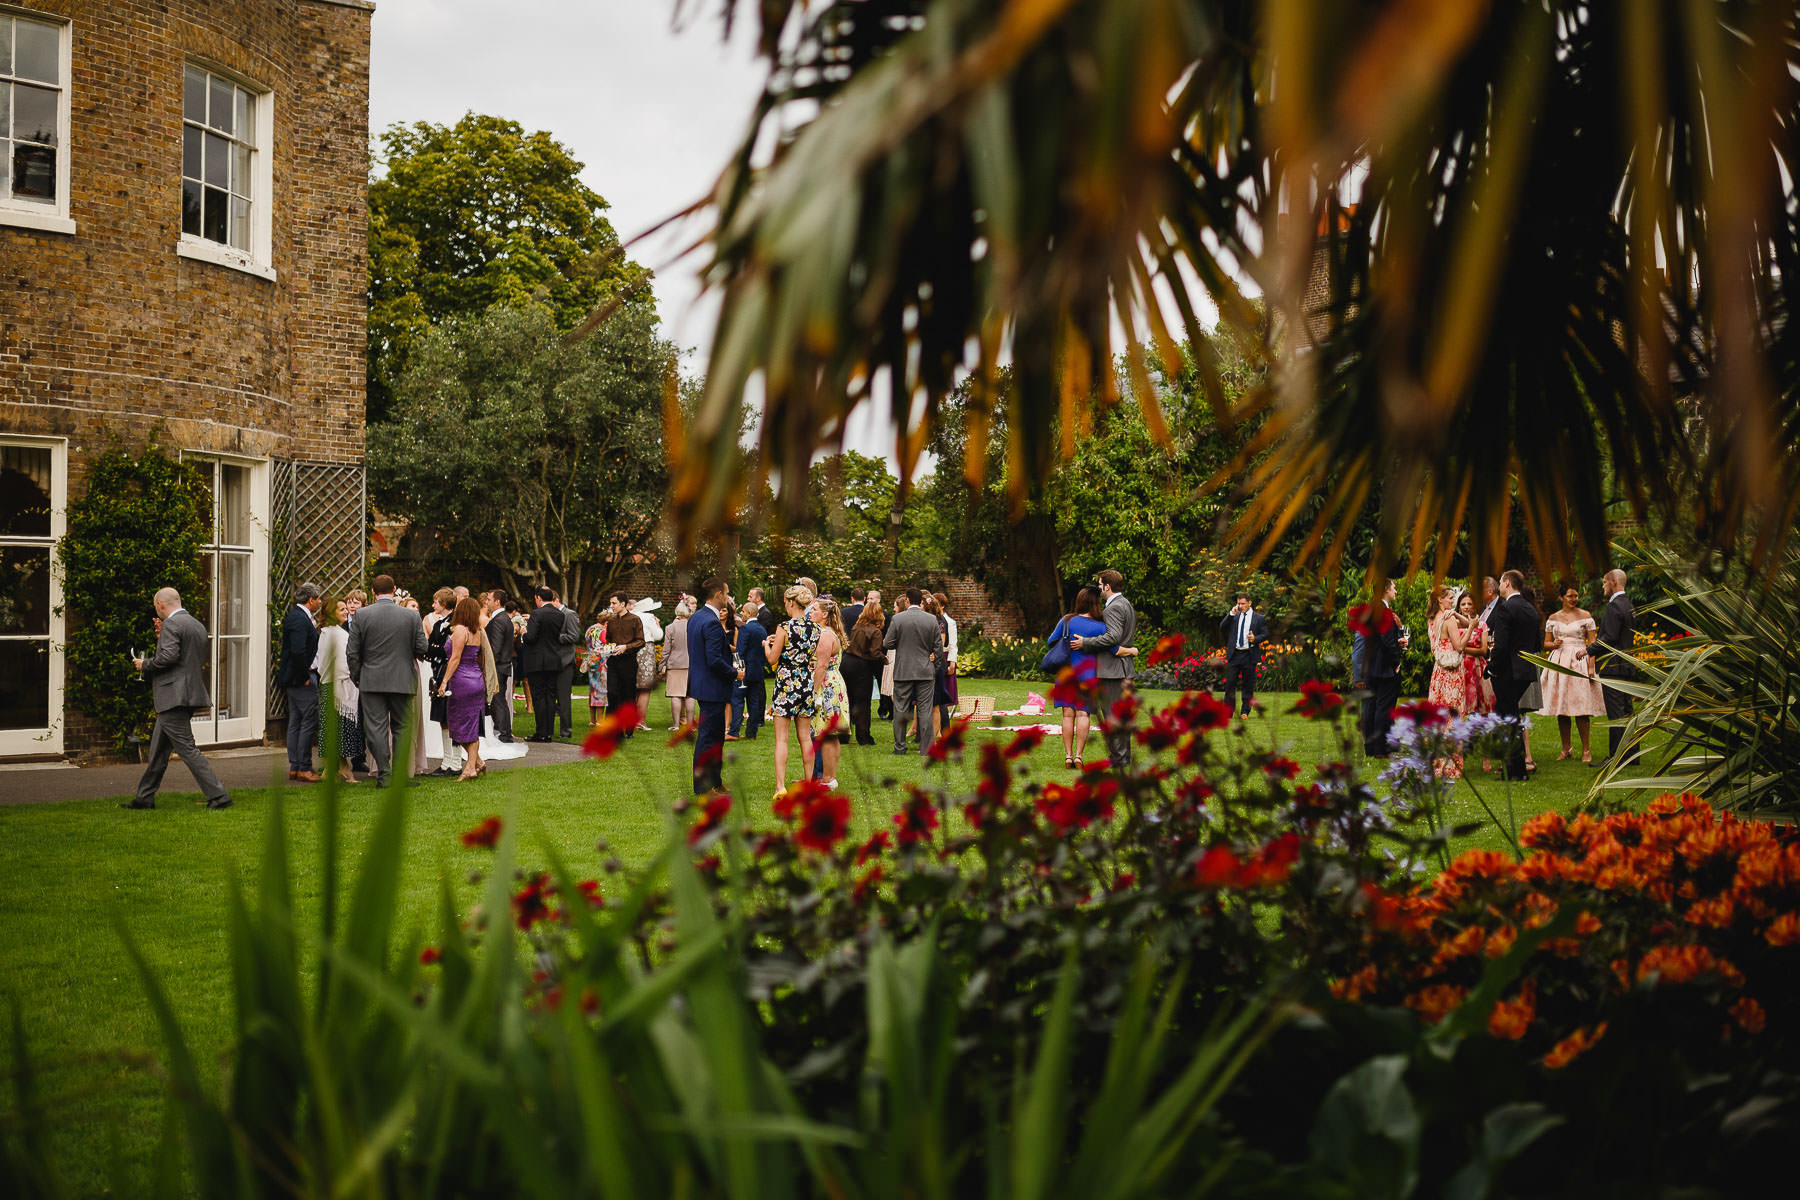 kew gardens wedding photography astra duncan35